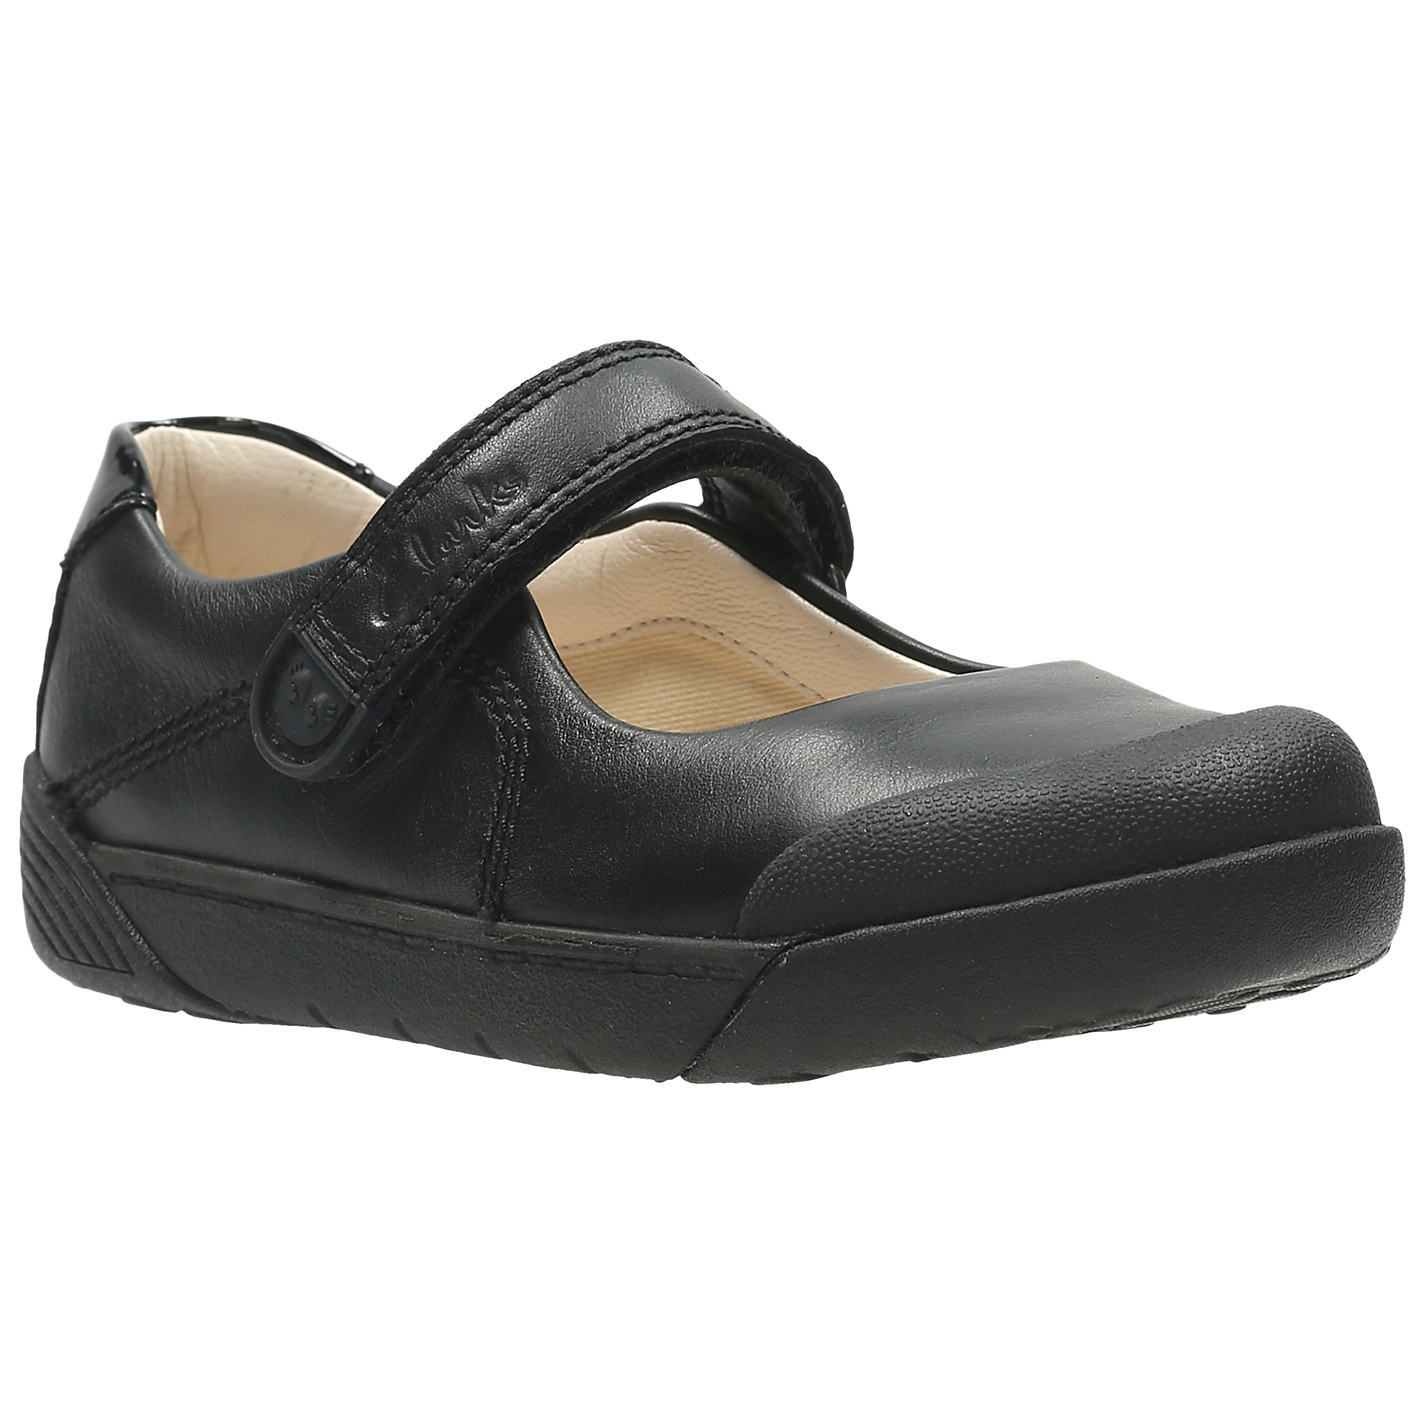 Second Hand Clarks Toddler Shoes